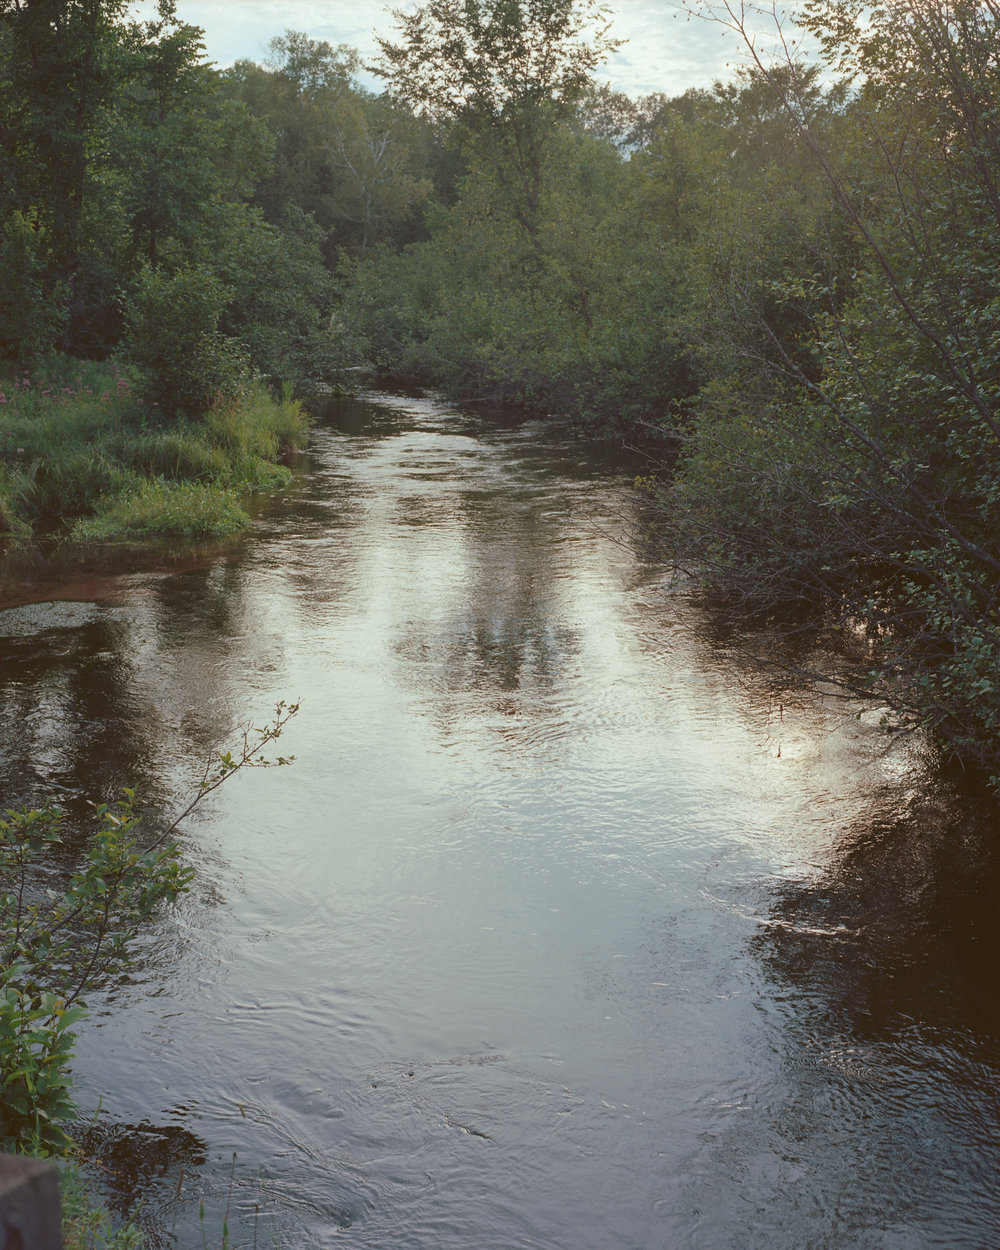 Pike Creek where my grandmother used to go fly fishing with her father